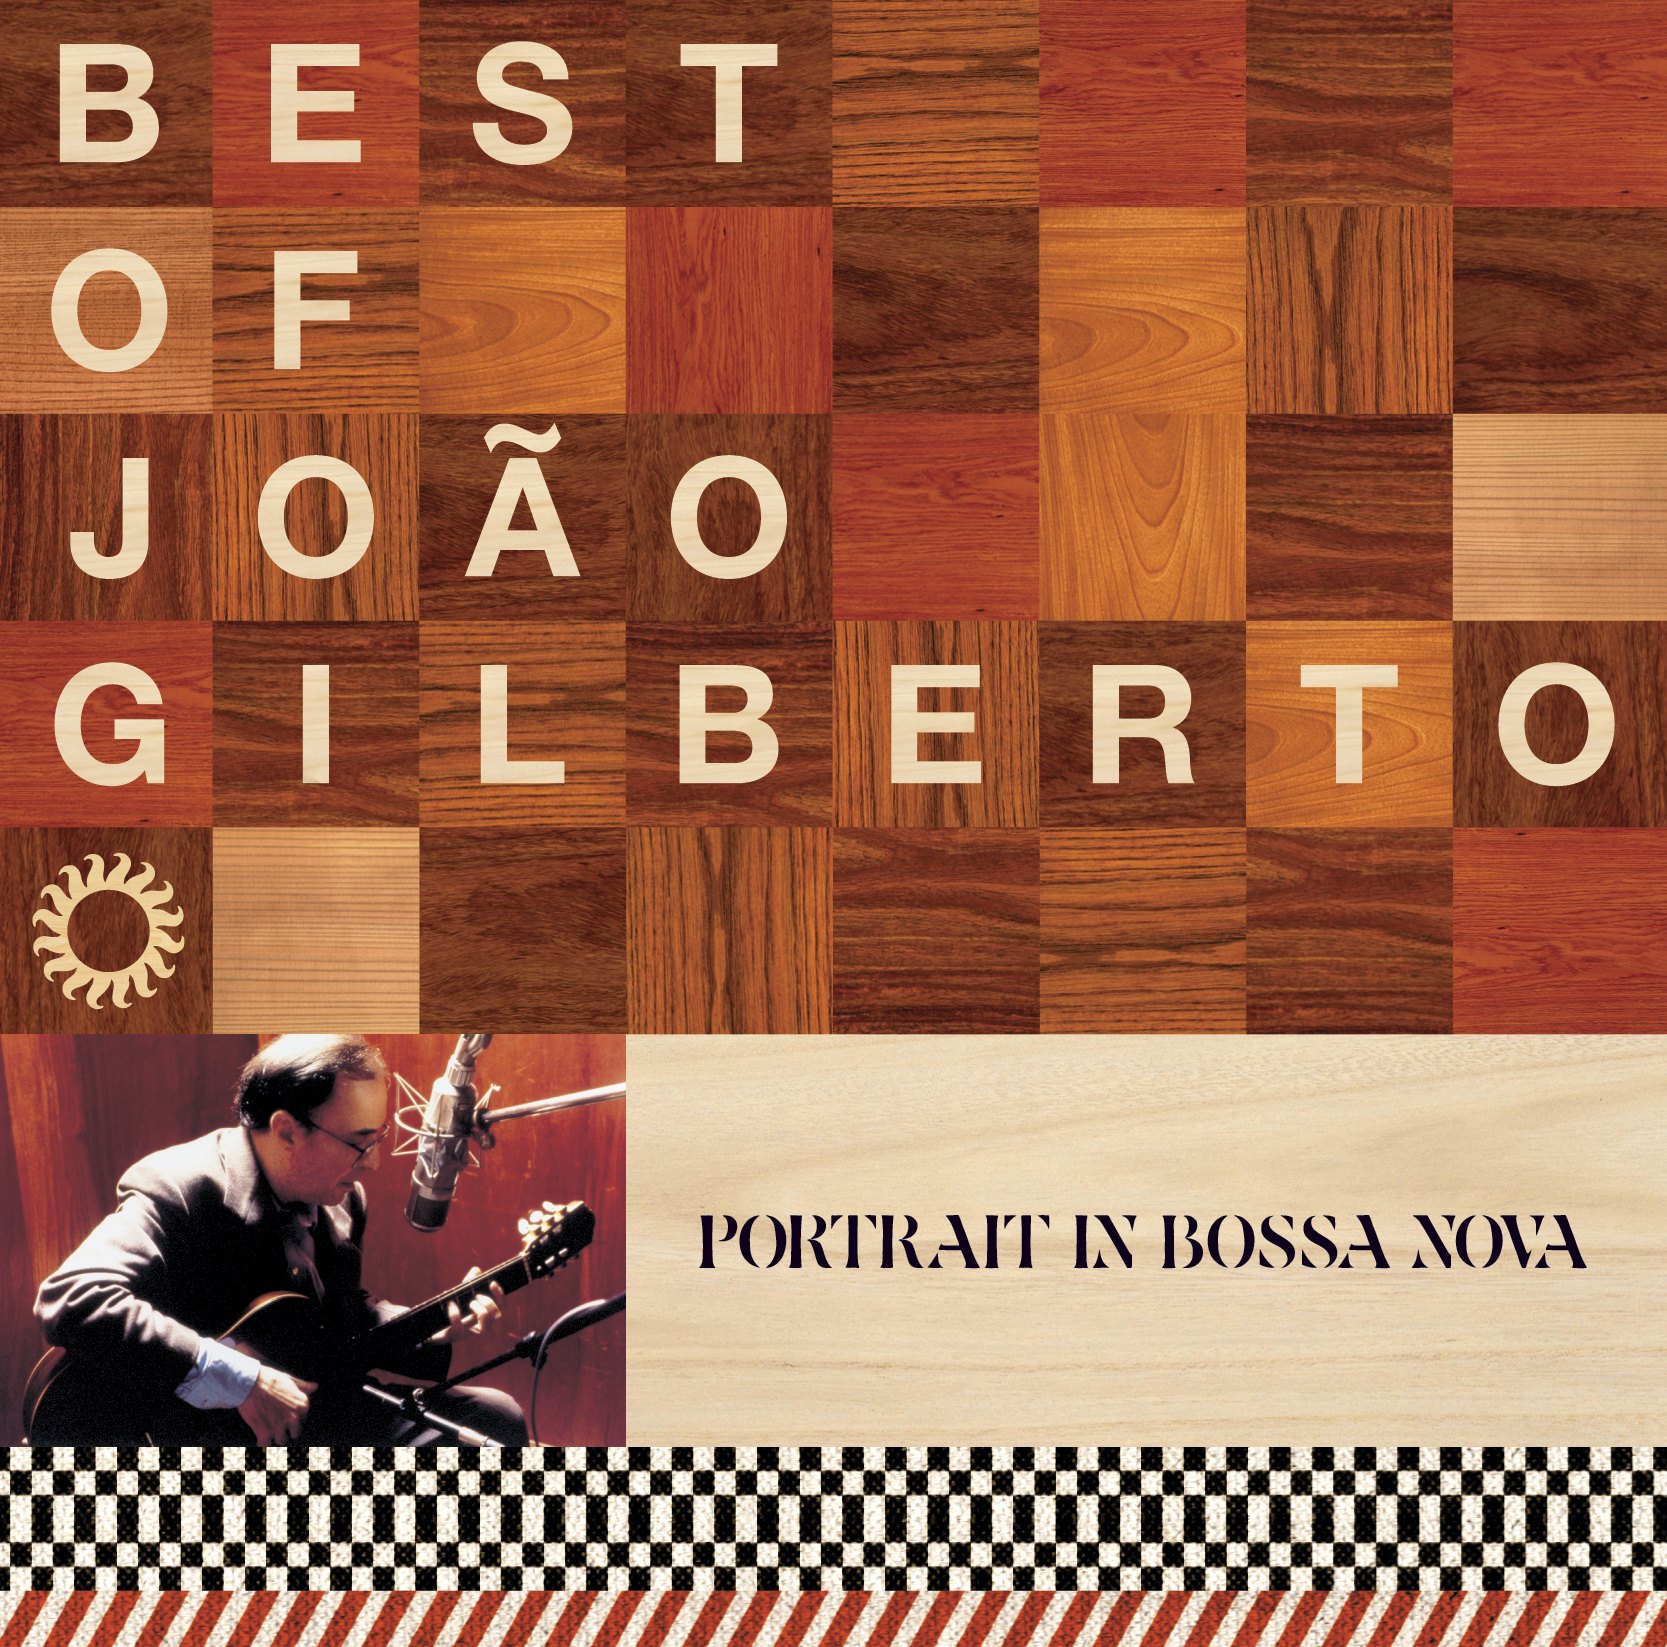 BEST OF JOAO GILBERTO